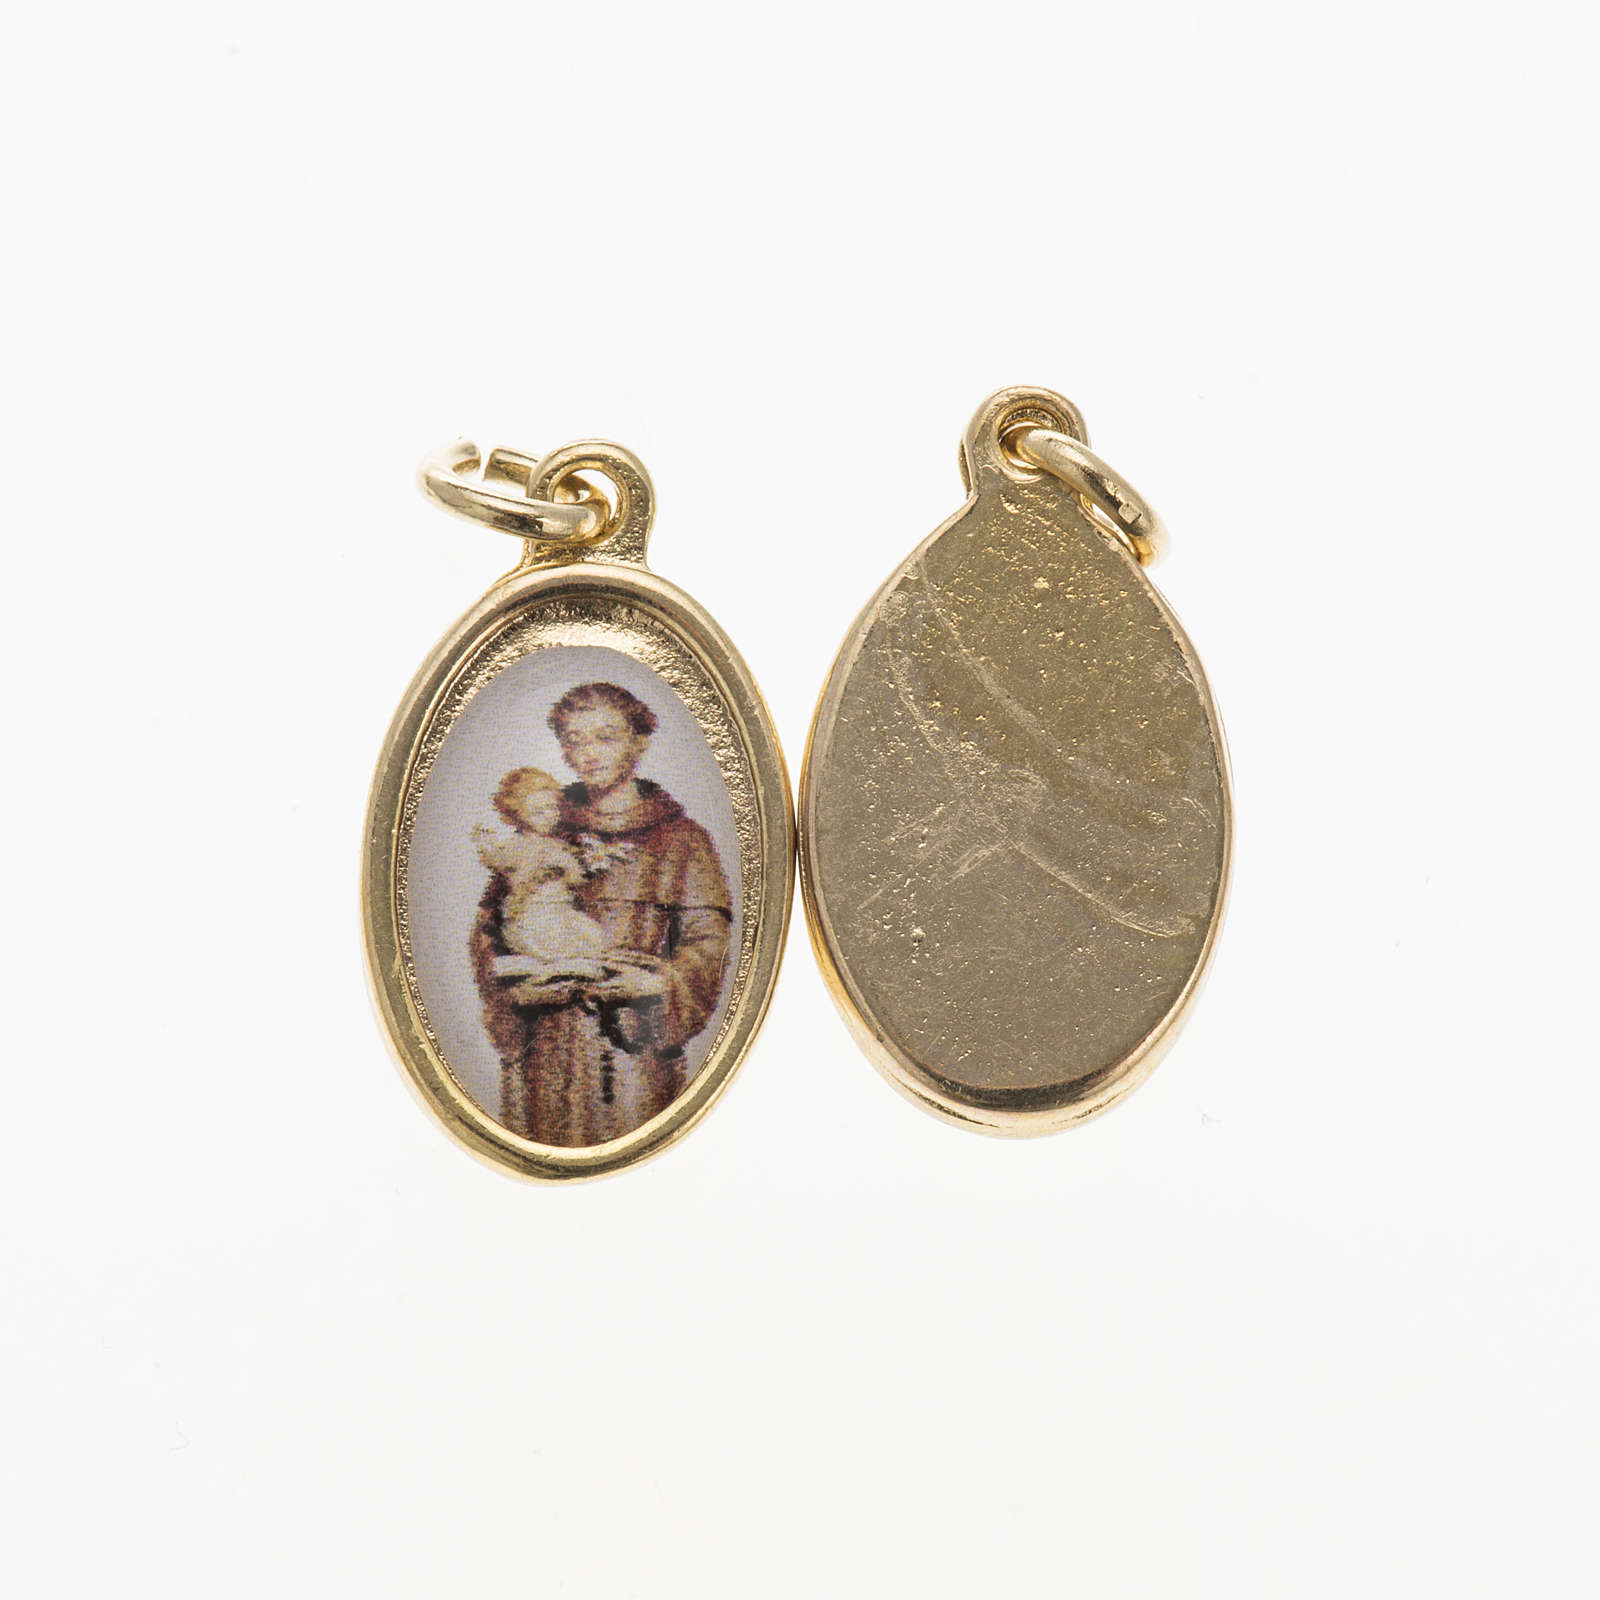 Saint Anthony of Padua medal in golden metal and resin 1.5x1cm 4